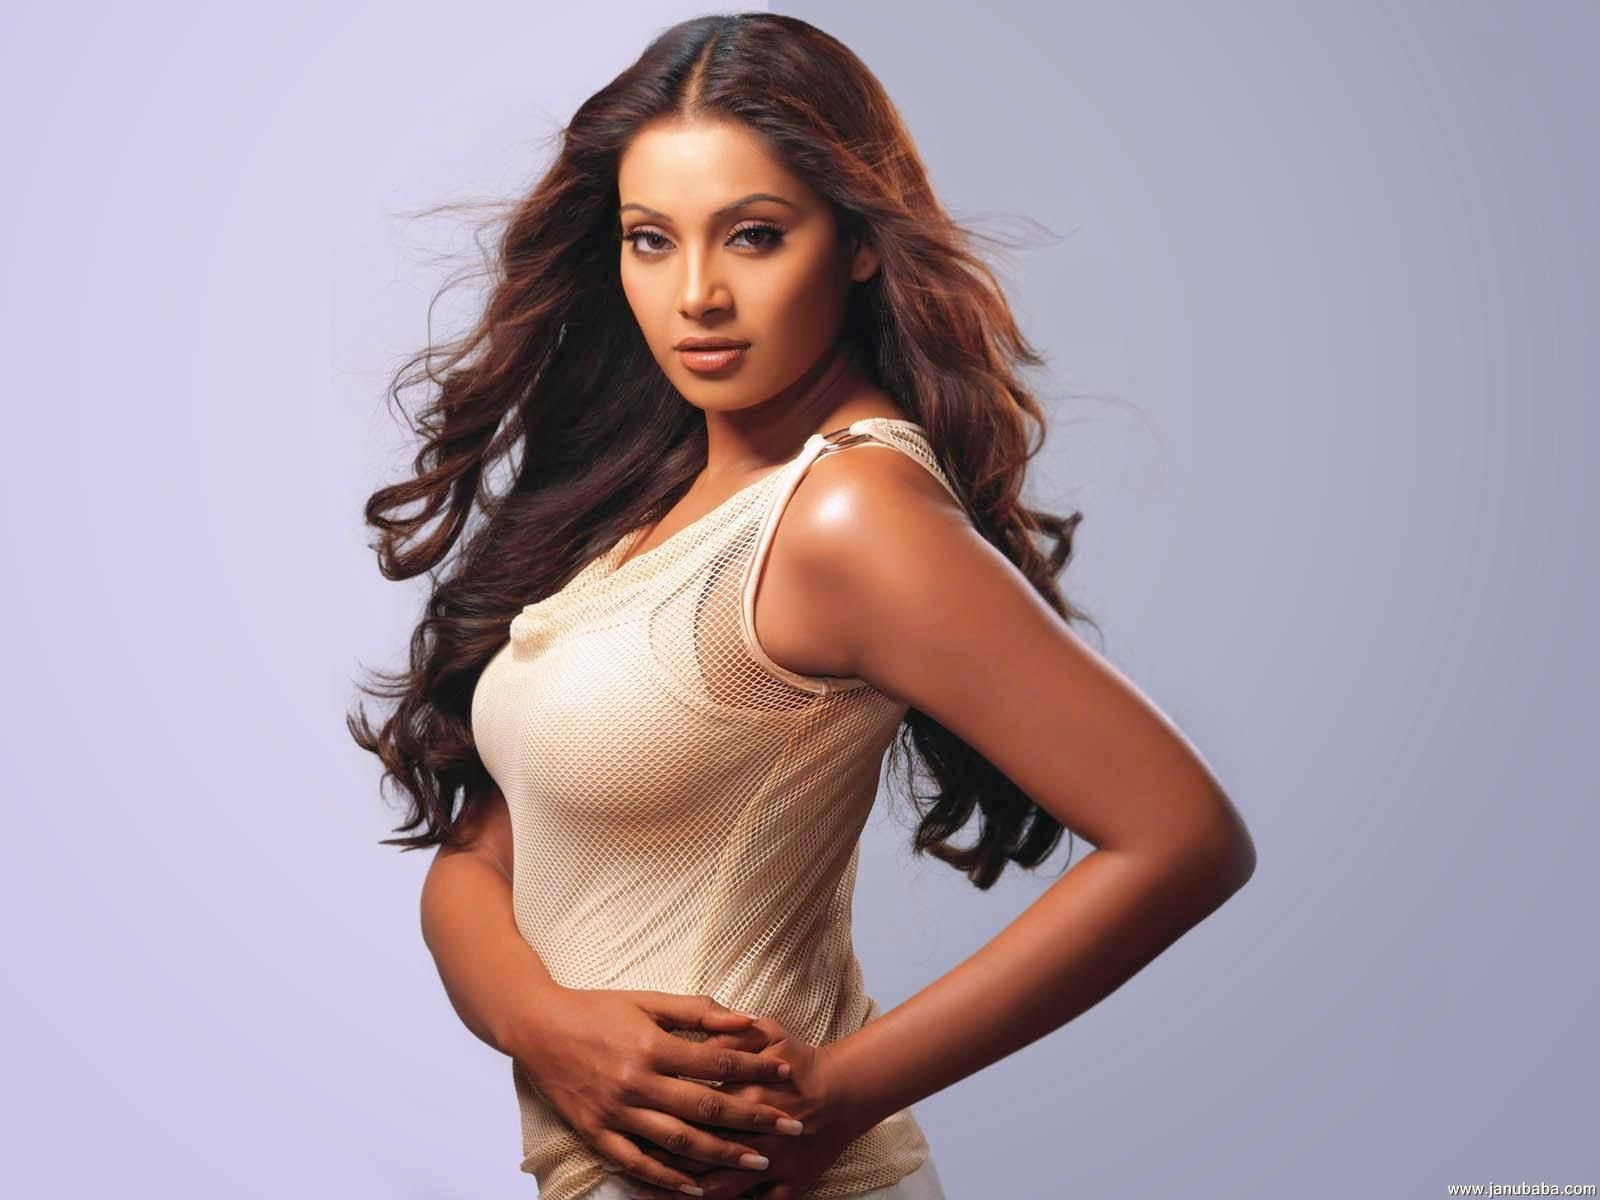 Bipasha Basu HD Wallpaper